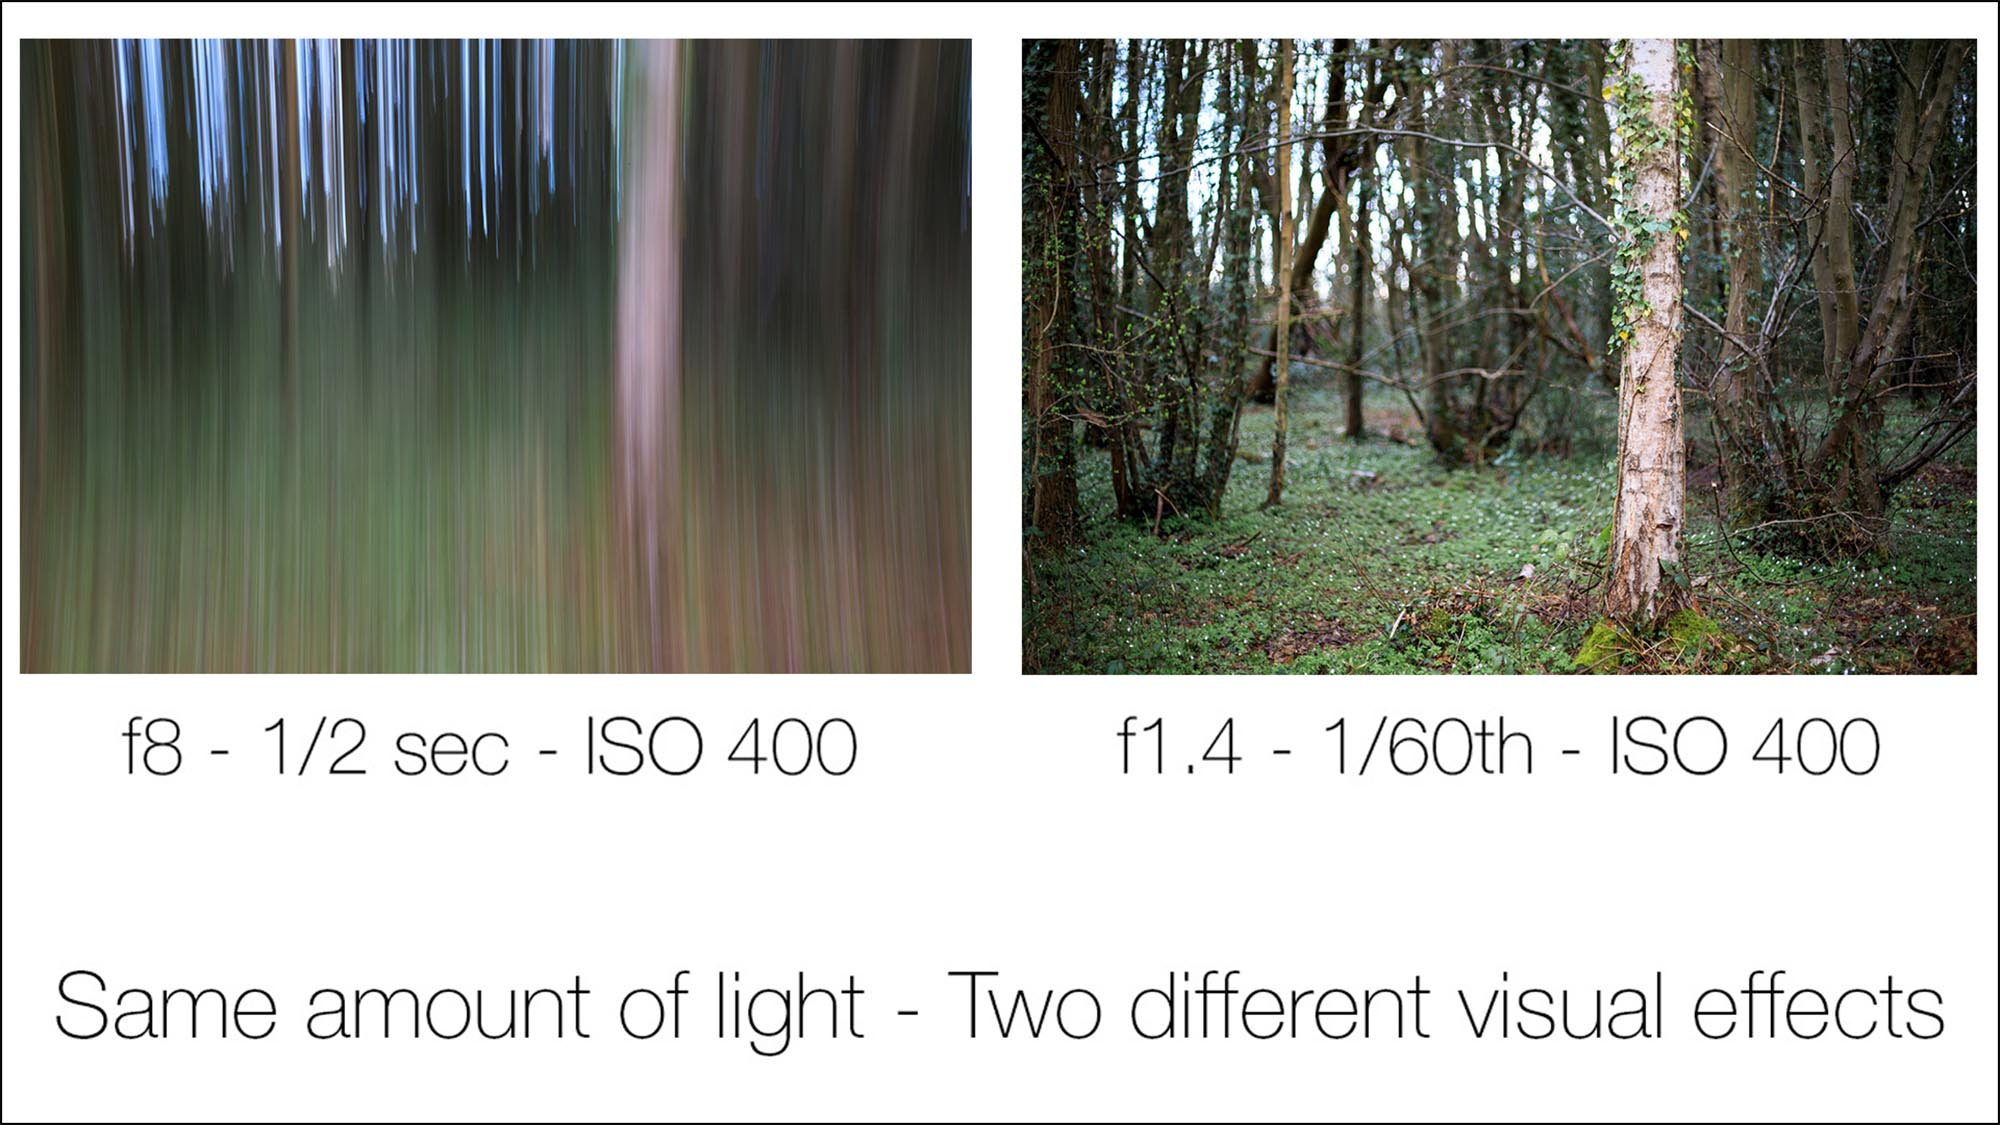 Lesson 11 – Balancing exposures - This lesson will see you take full control over the exposure of your shots. You will combine your newly learnt knowledge of Apertures, Shutter Speeds, and ISO to manually expose shots for varied creative effects. You will gain in depth knowledge on what stops are in photography and how you control them to take full control over the exposure and visual effects of your photography. You will also be shown how to use your camera in fully manual mode and put all this into practice in set tasks.